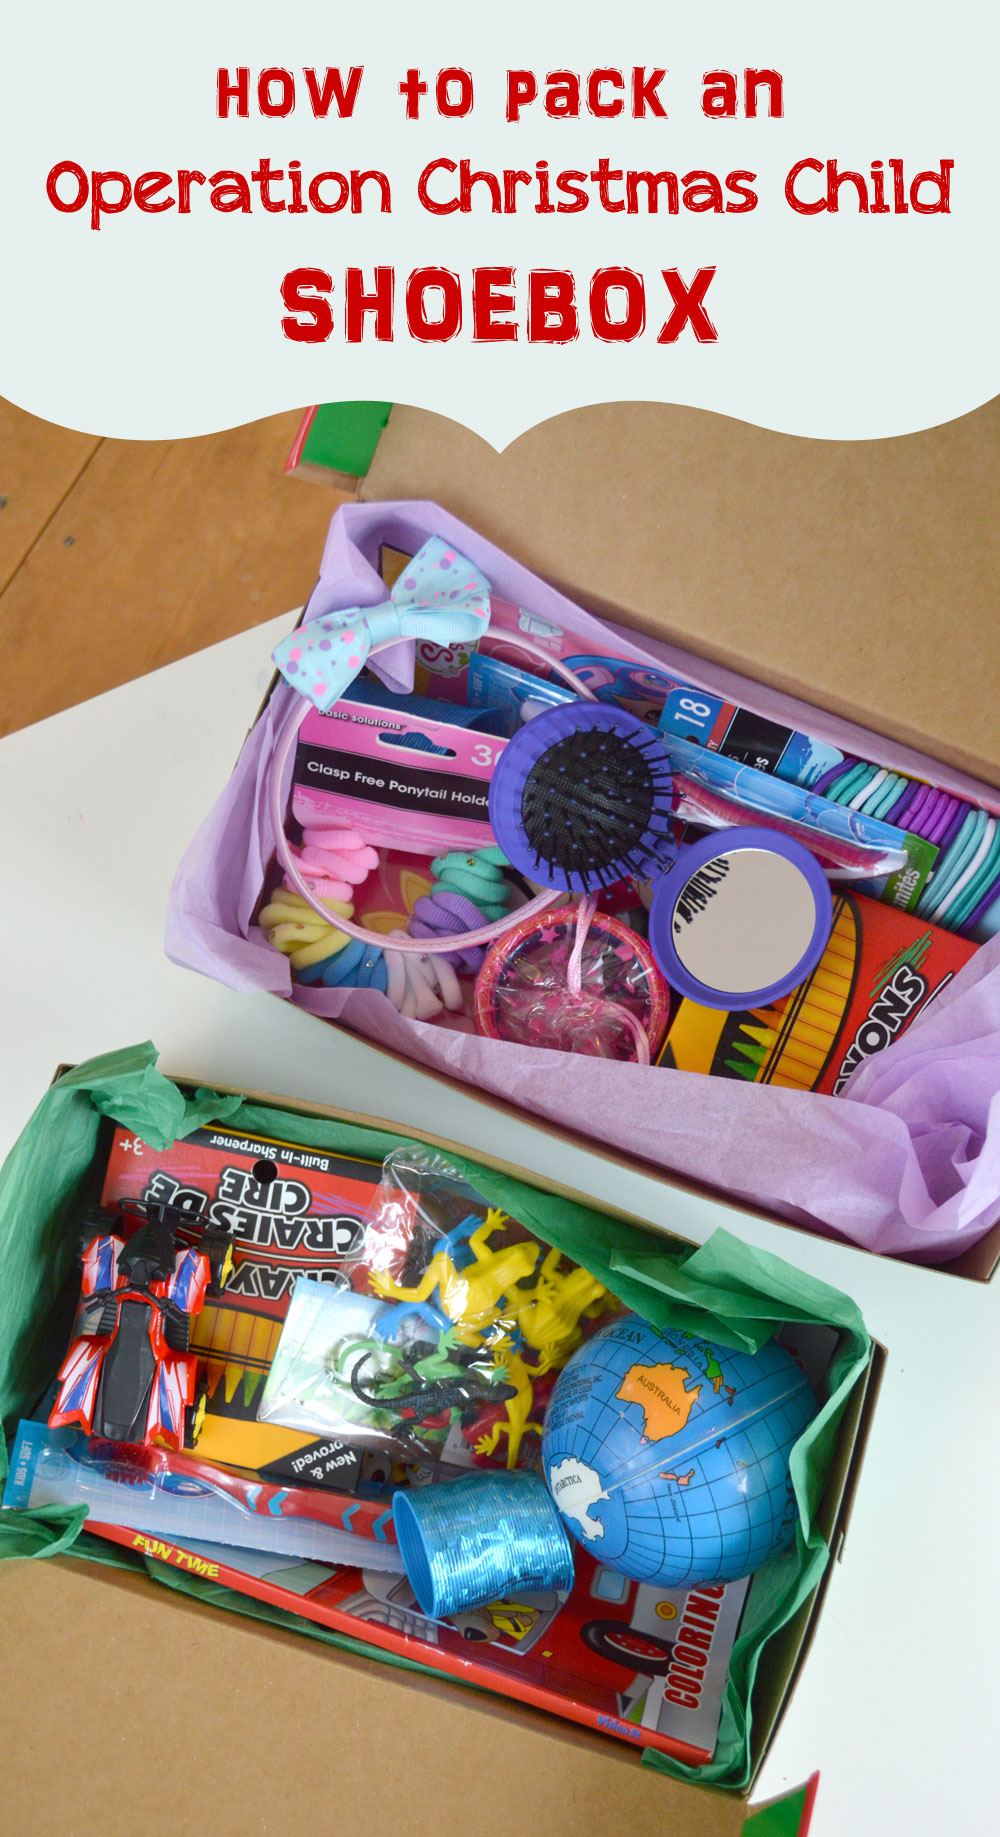 How to Pack an Operation Christmas Child shoebox and kids gift ideas - Mommy Scene